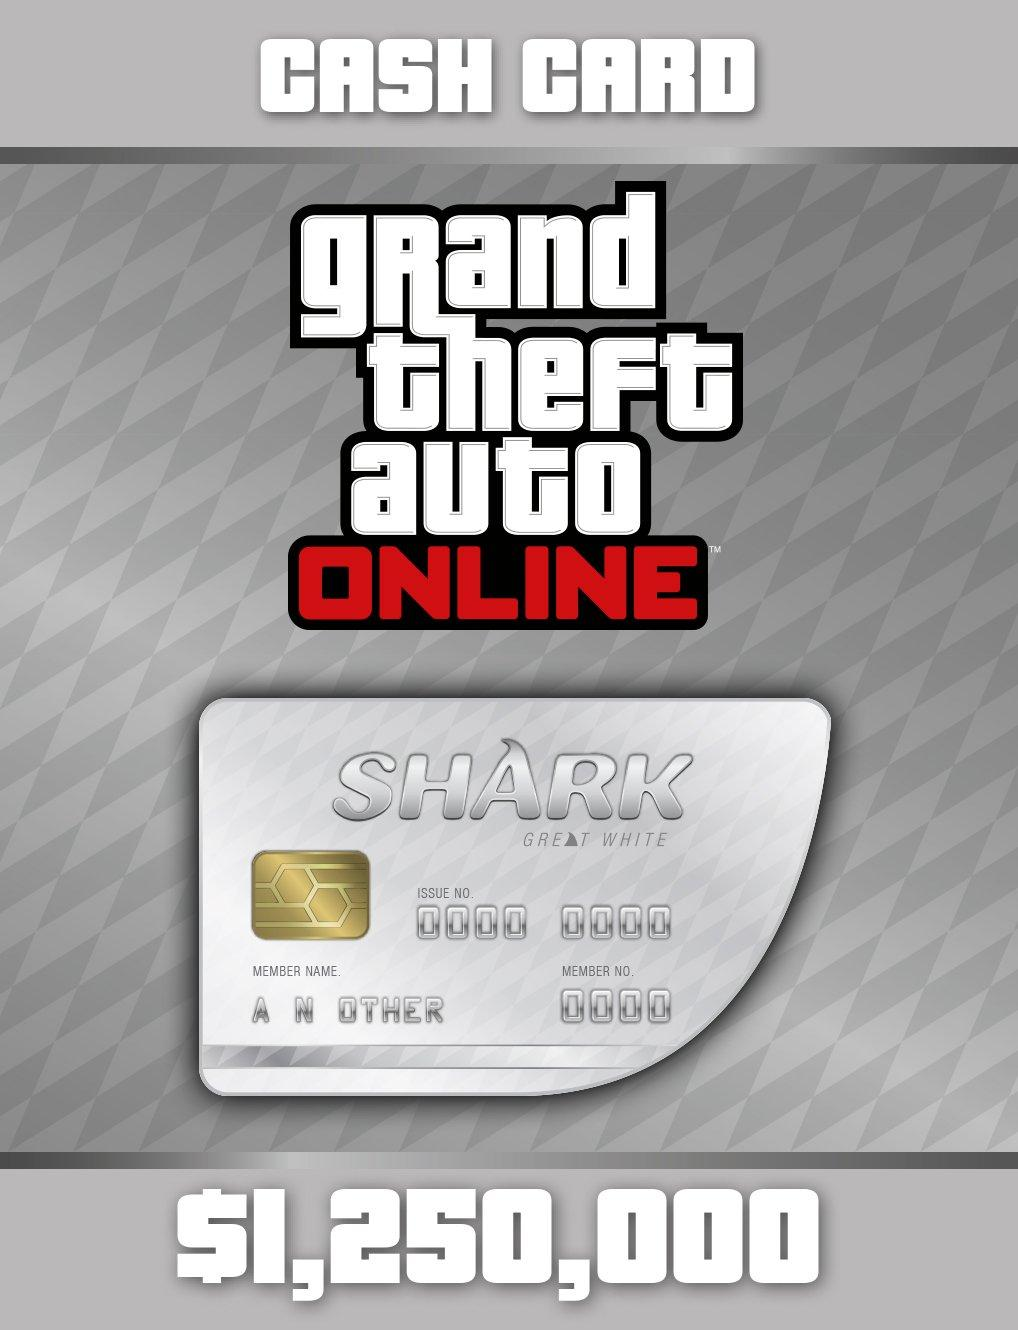 Grand Theft Auto Online: The Great White Shark Cash Card | PC | GameStop